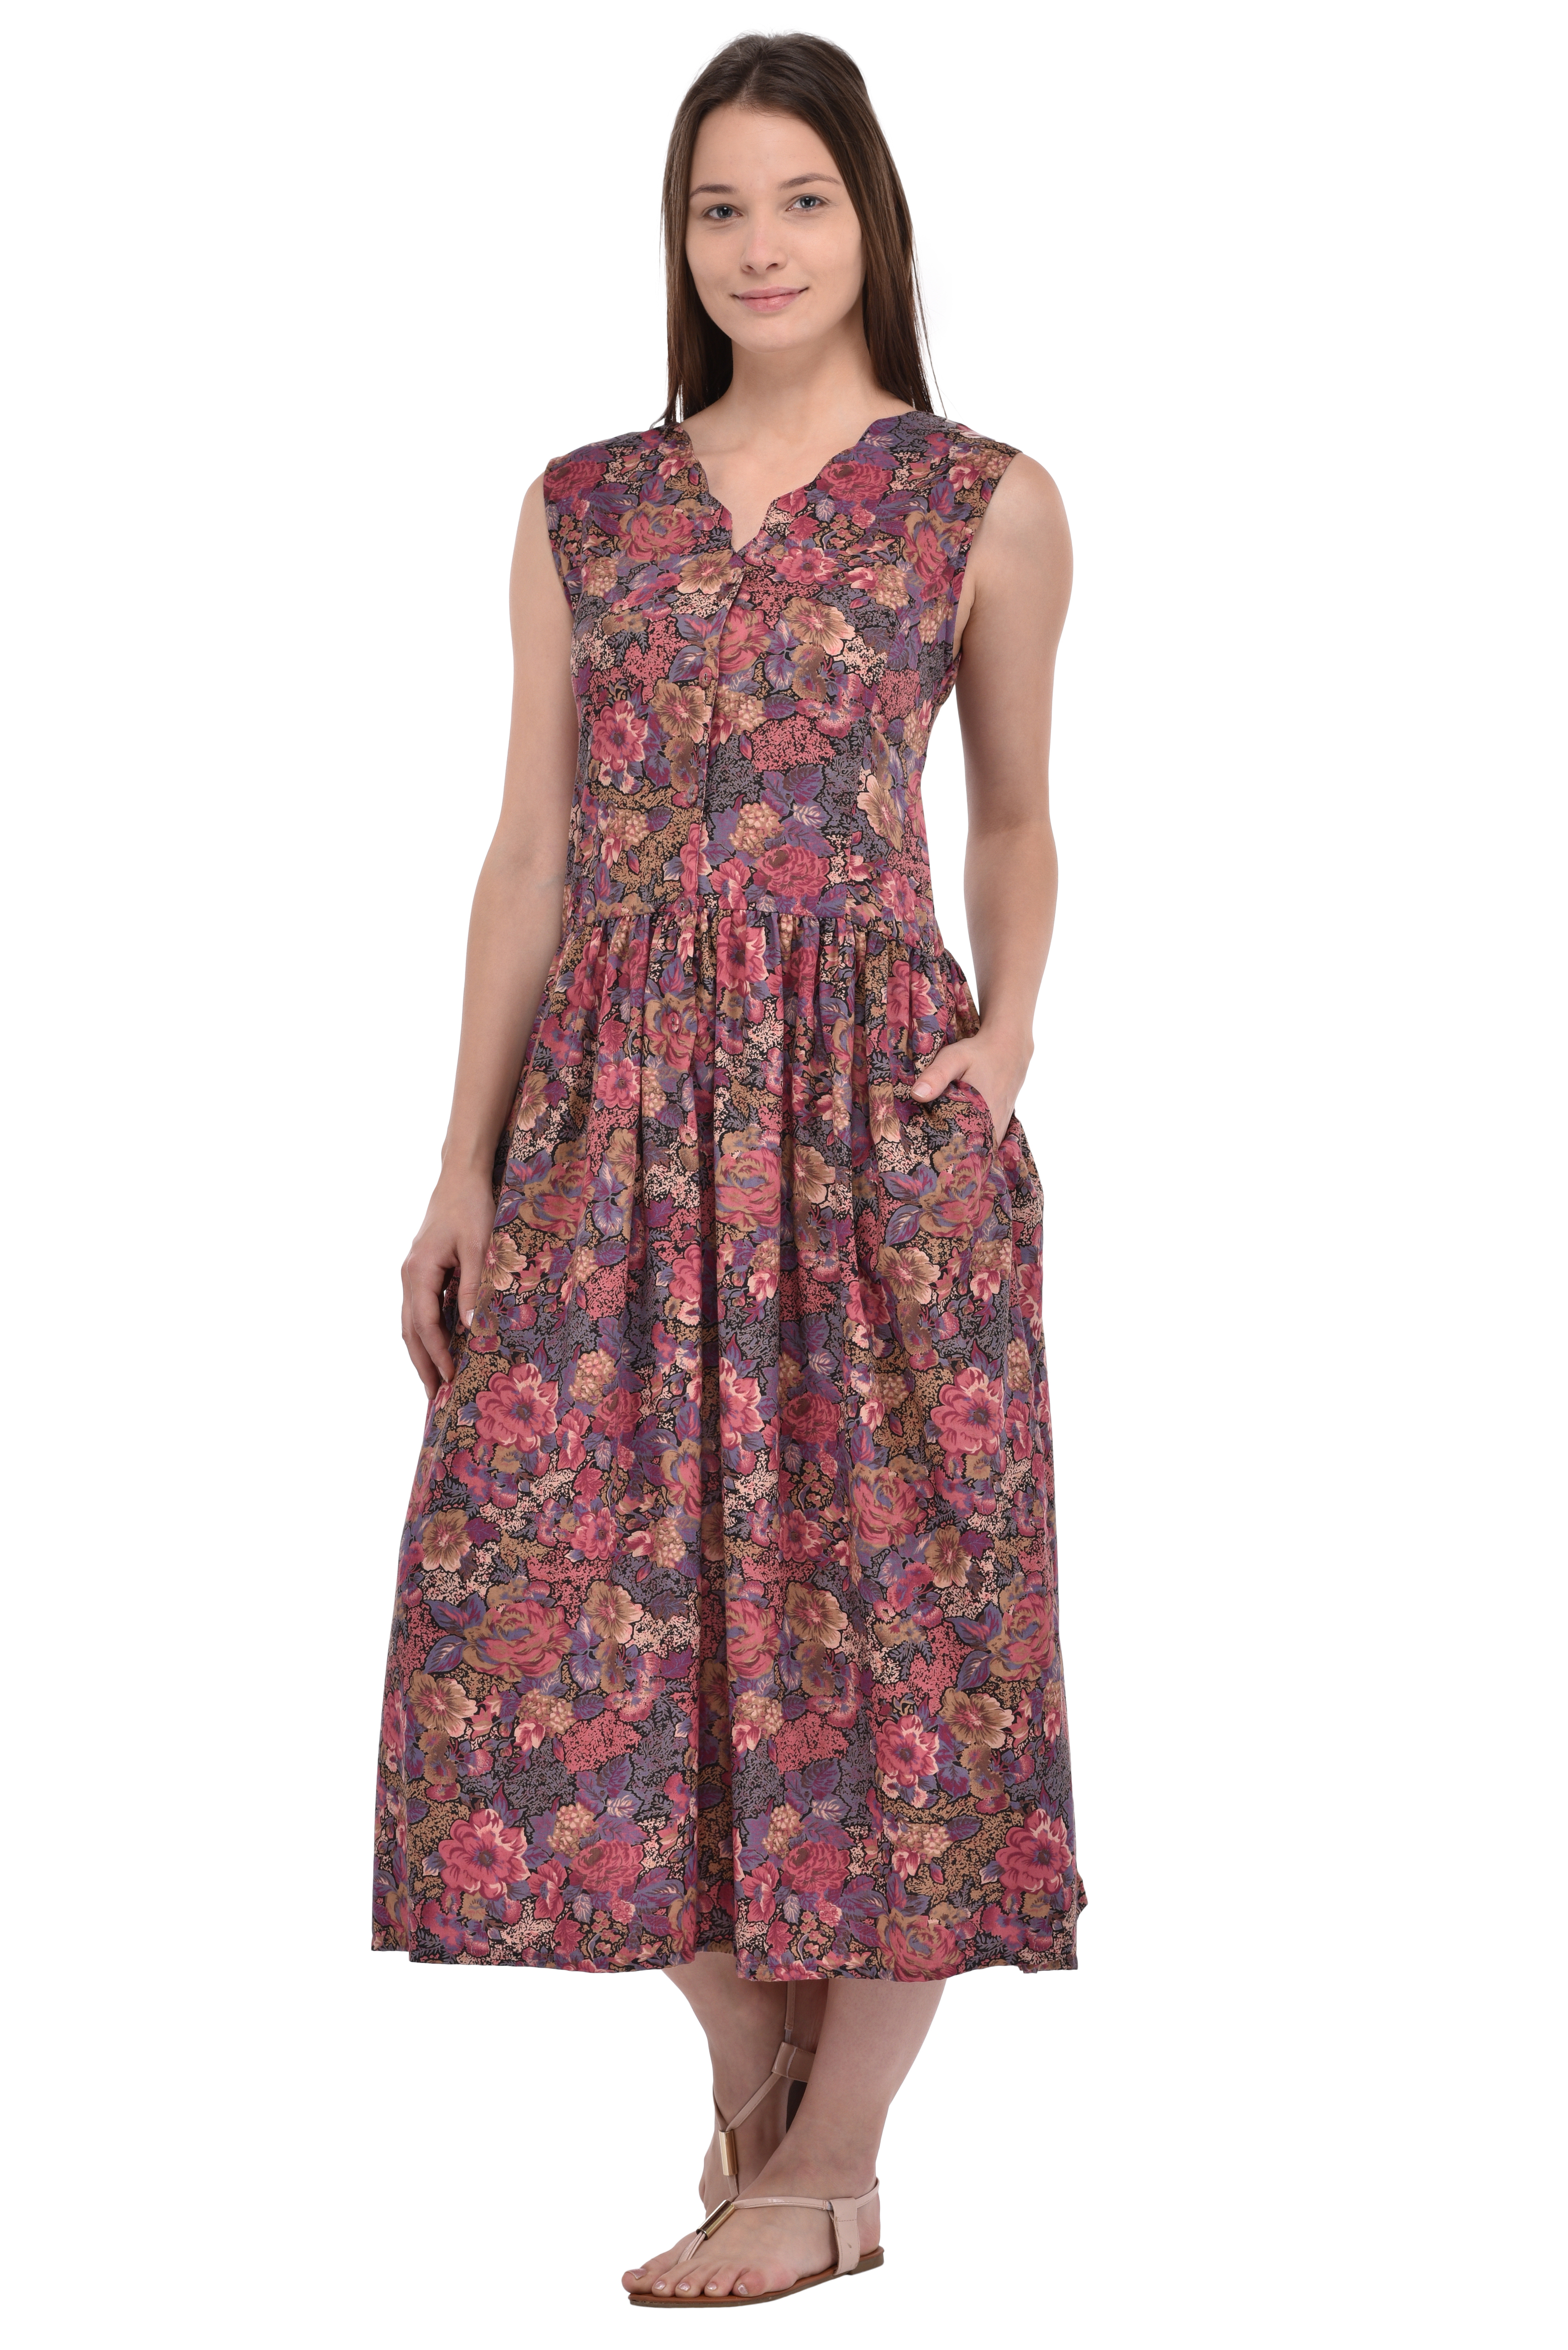 Sleepwear & Robes Cotton Lane Choice Materials Pure Cotton Printed Sleeveless Nightdress Clothing, Shoes & Accessories